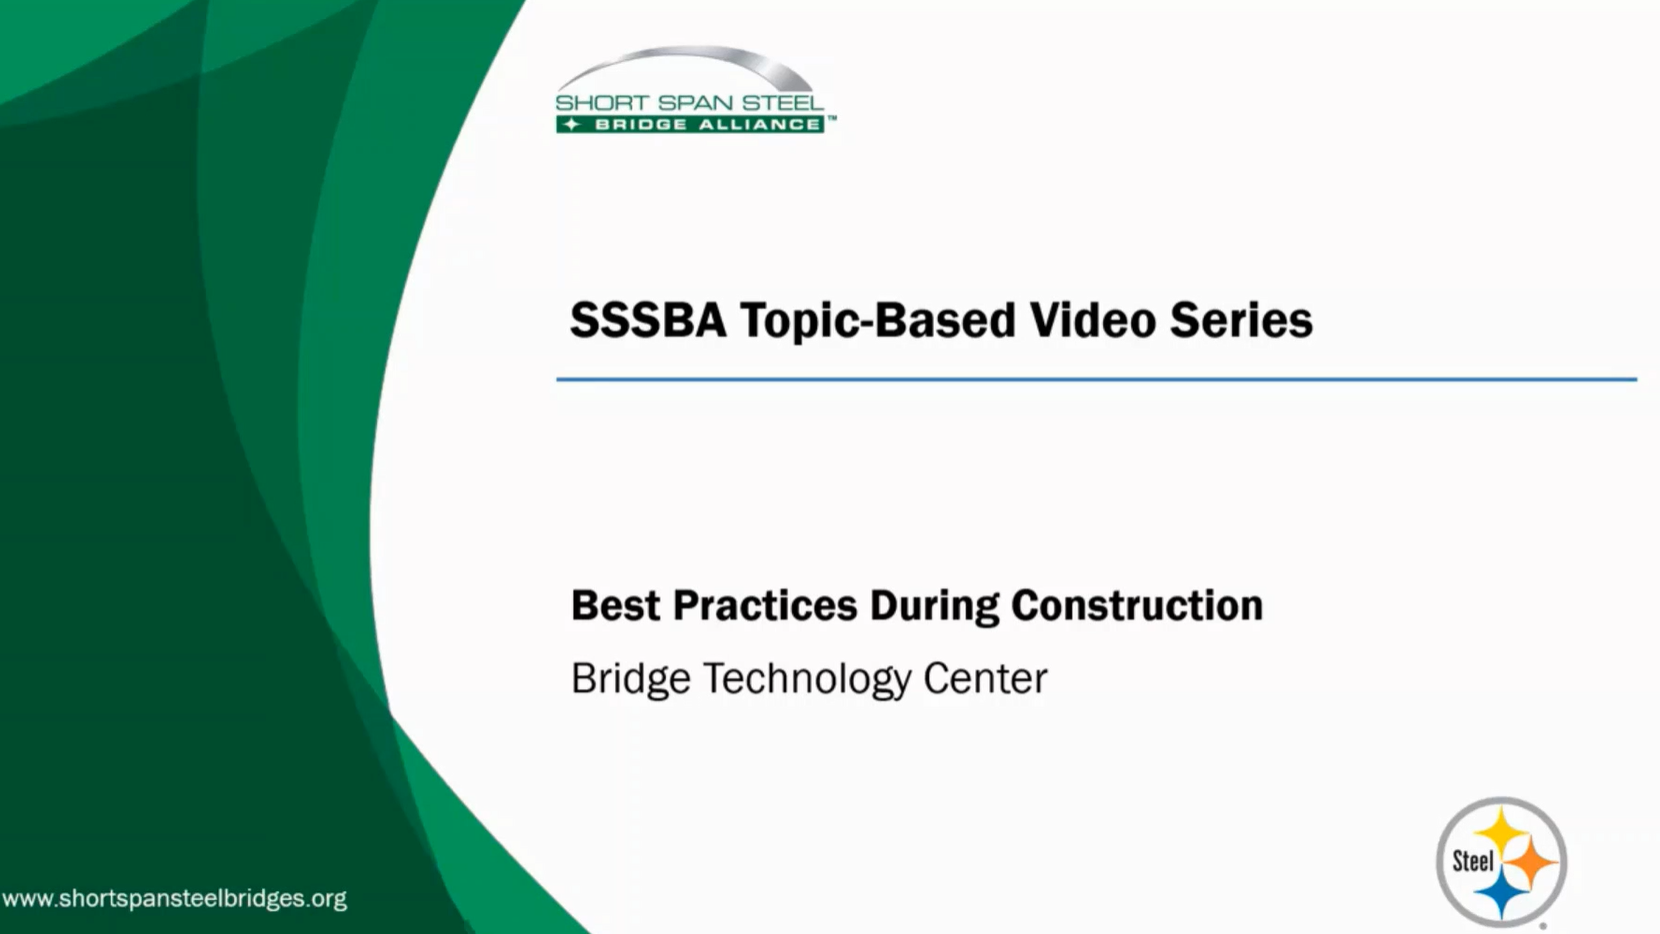 Best Practices for Construction